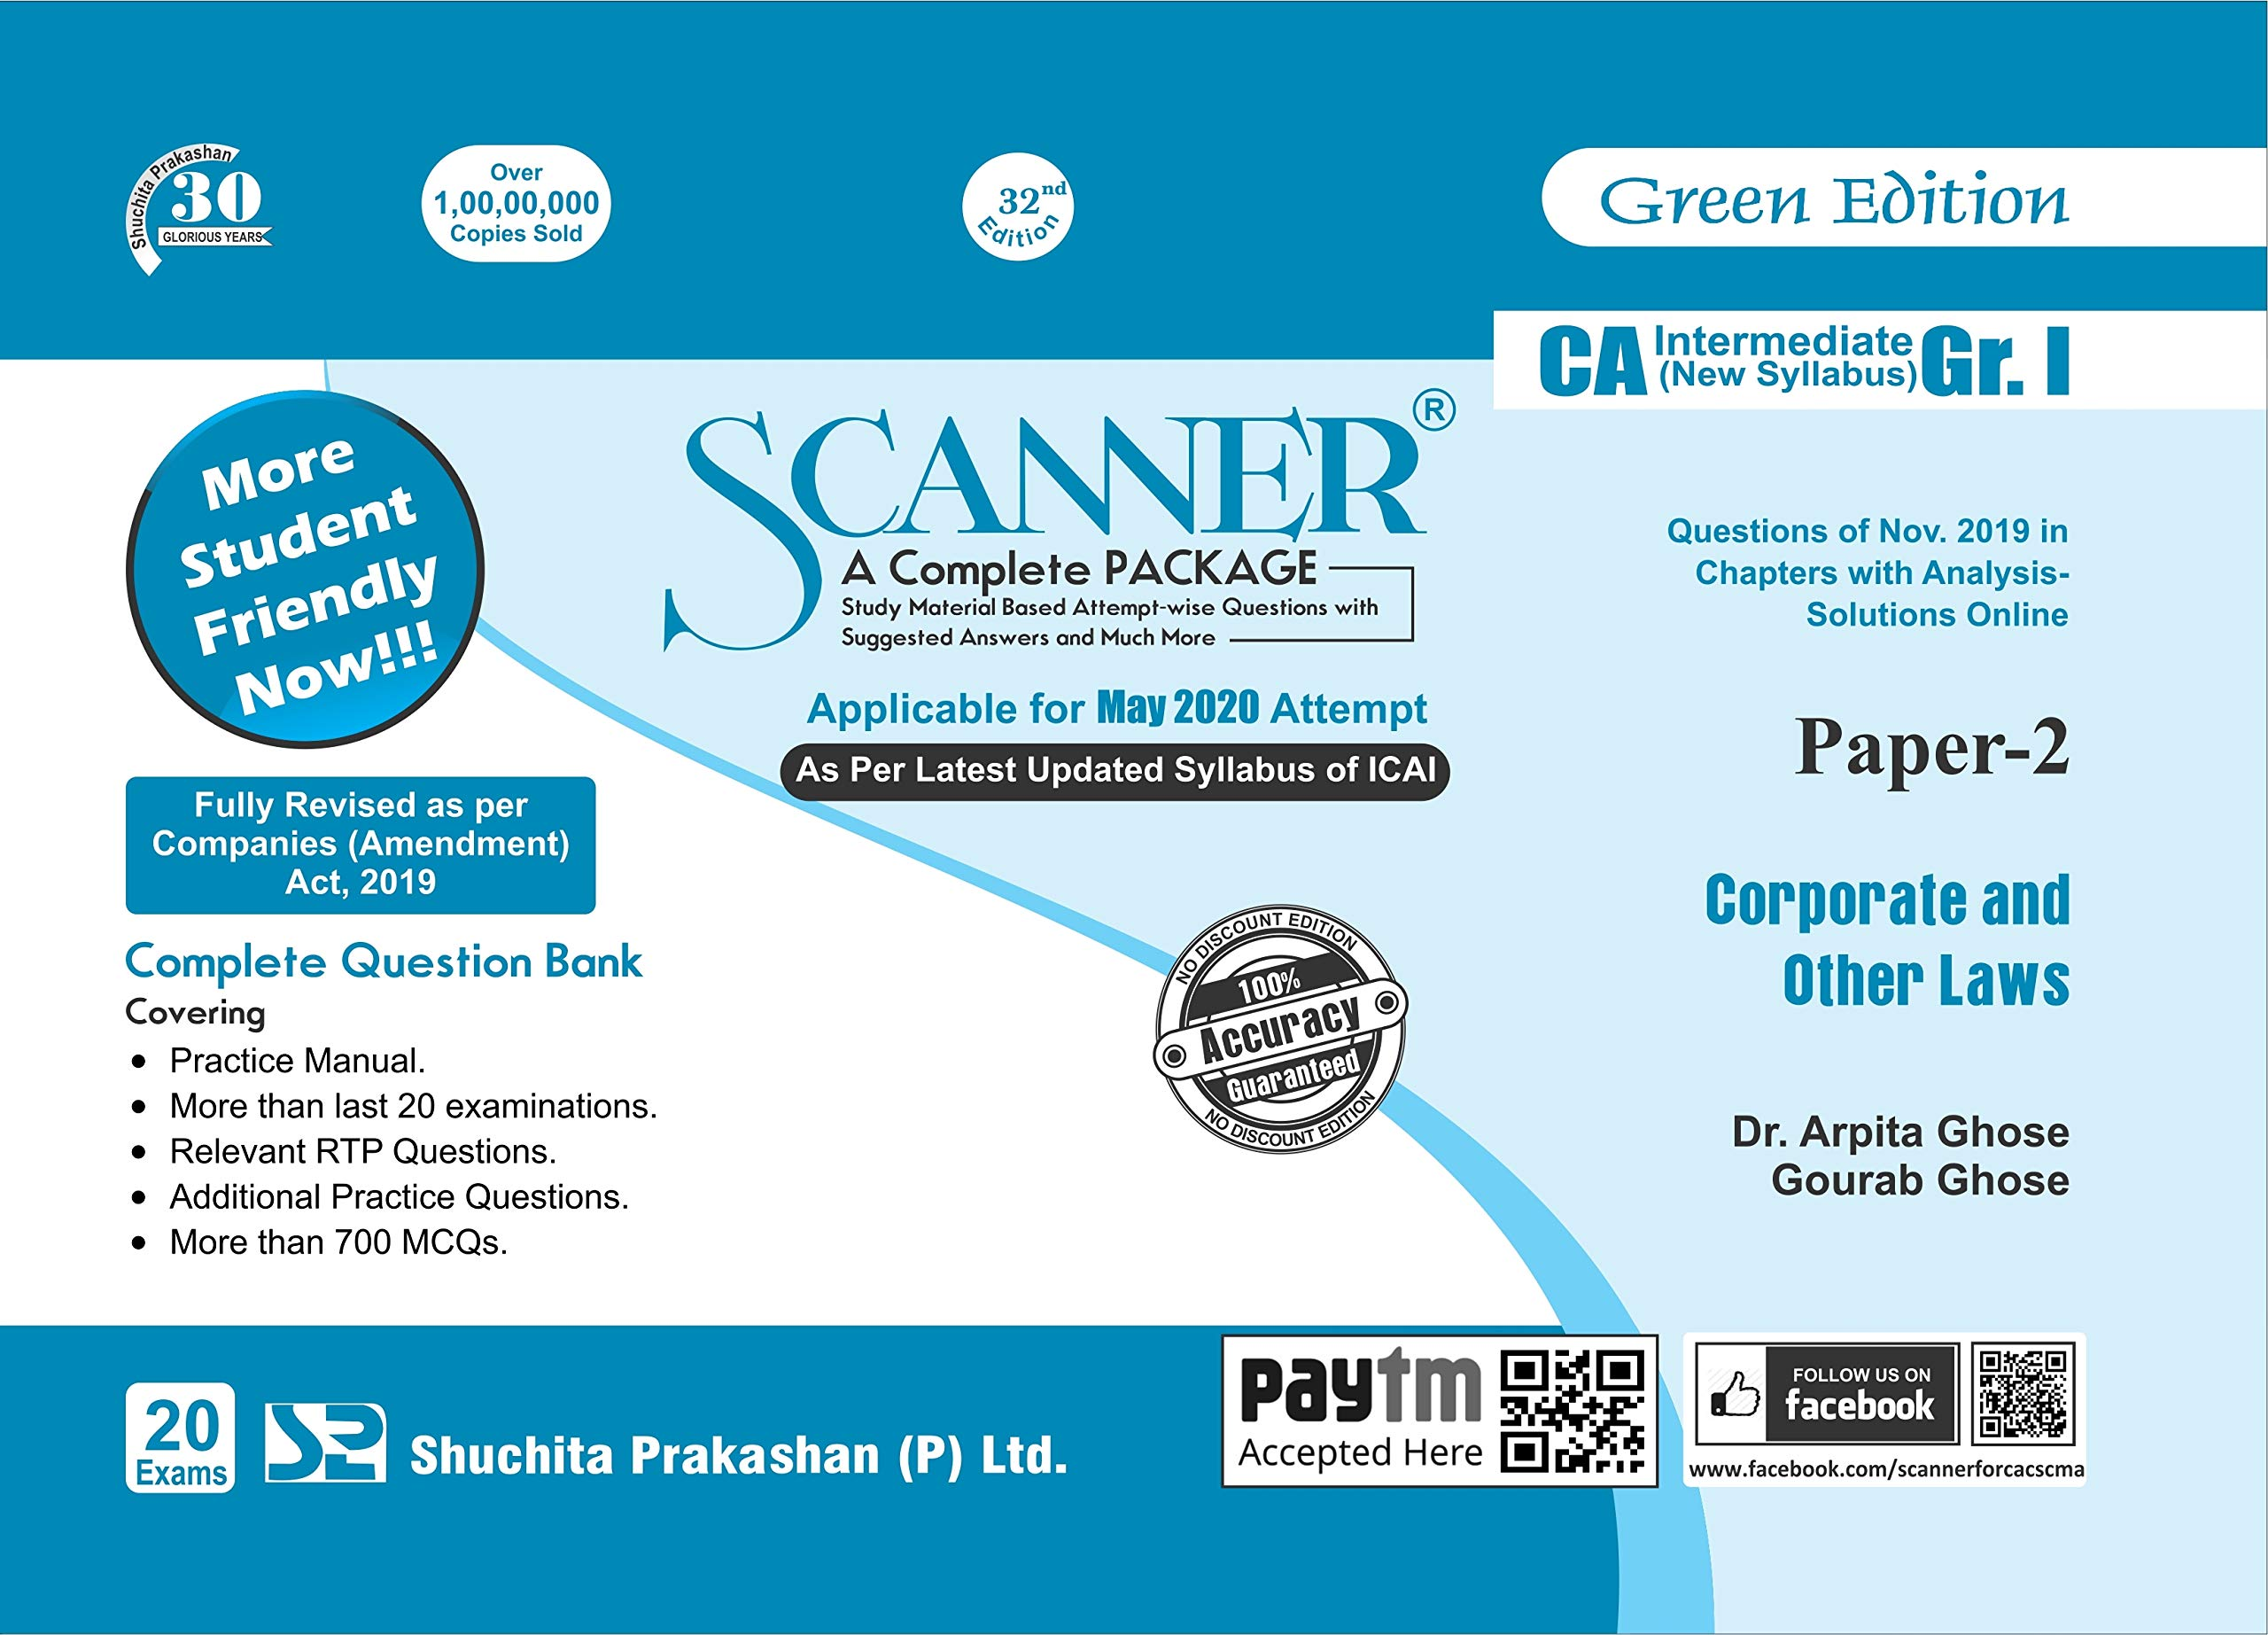 Shuchita Prakashan Solved Scanner CA Inter Group I (New Syllabus) Paper-2 Corporate and Other Laws By Dr.Arpita Ghose and Gourab Ghose Applicable for May 2020 Exam